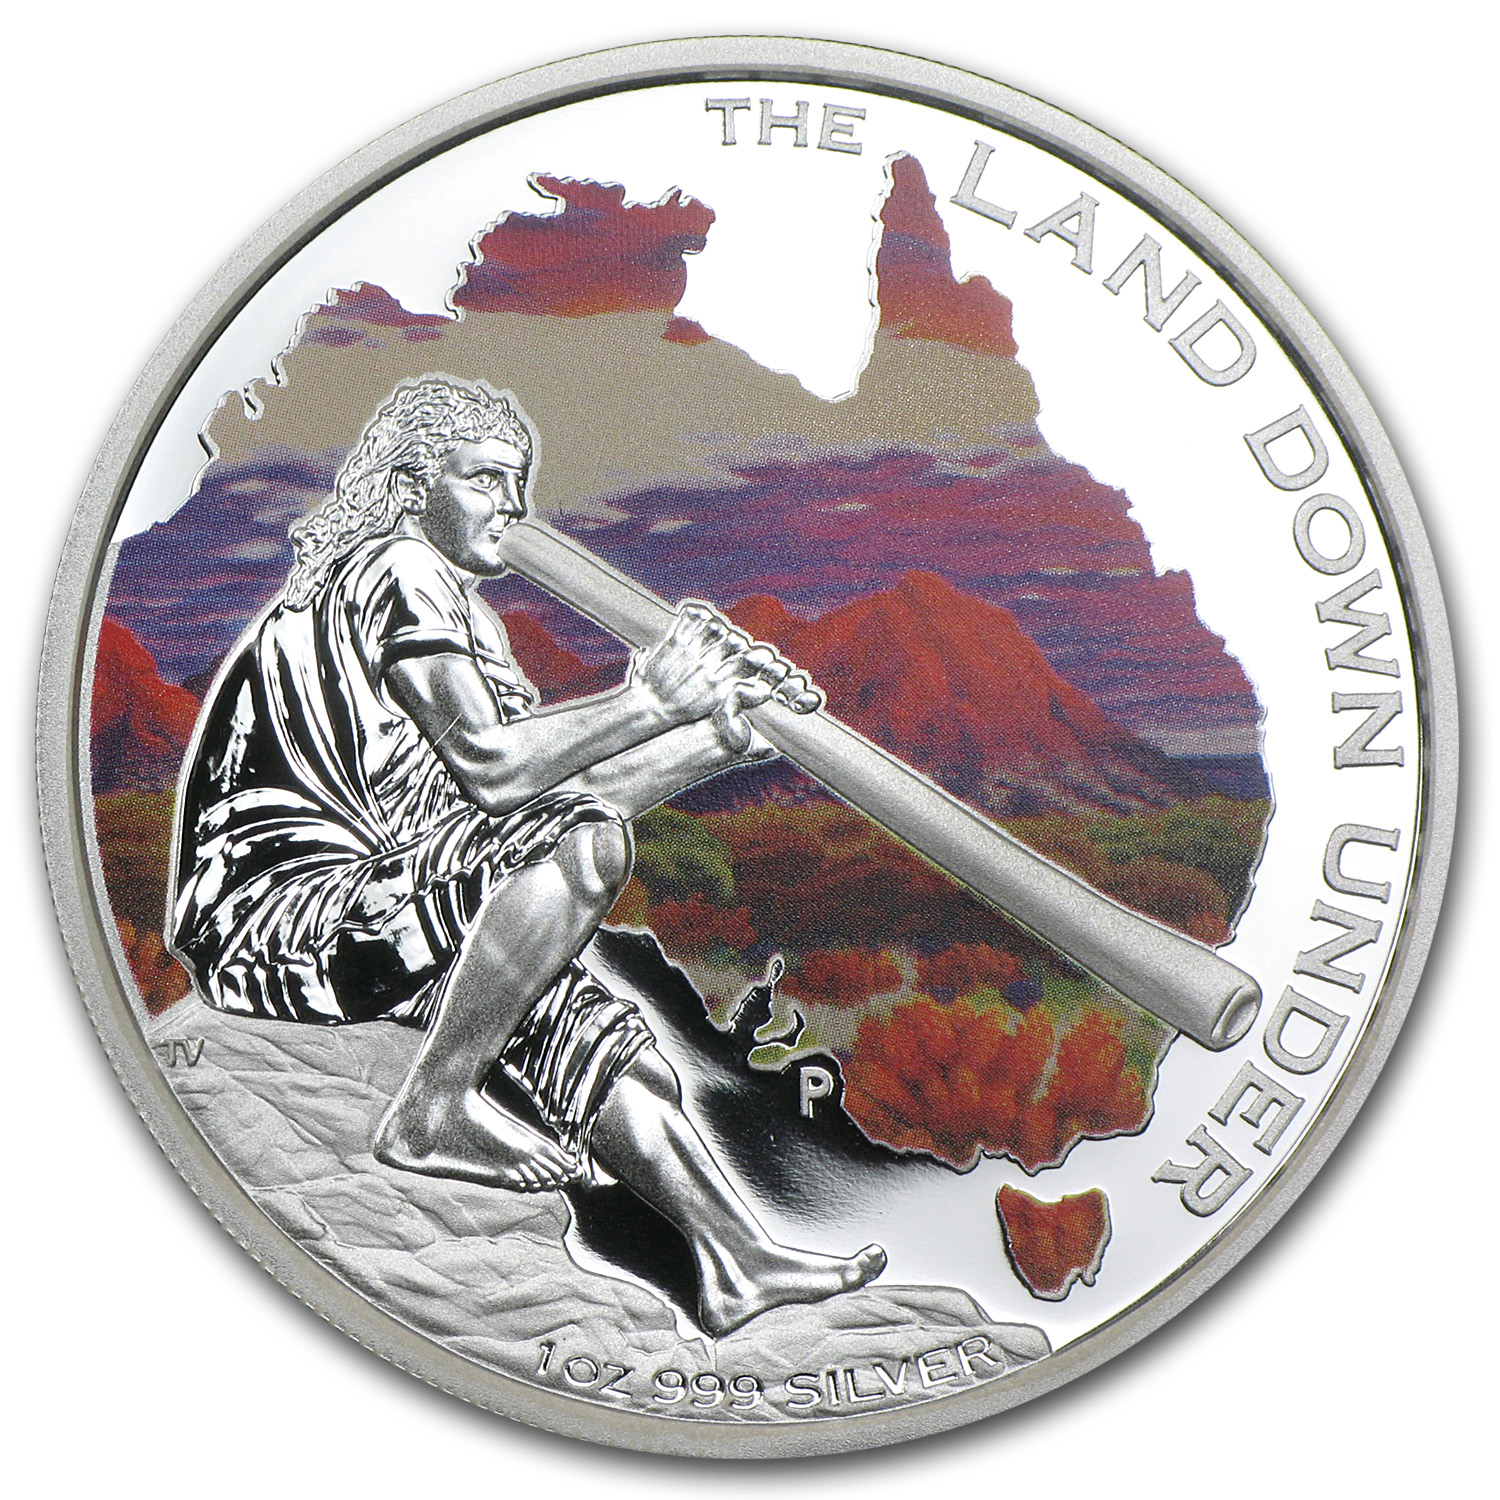 2013 The Land Down Under - Didgeridoo 1 oz Silver Proof